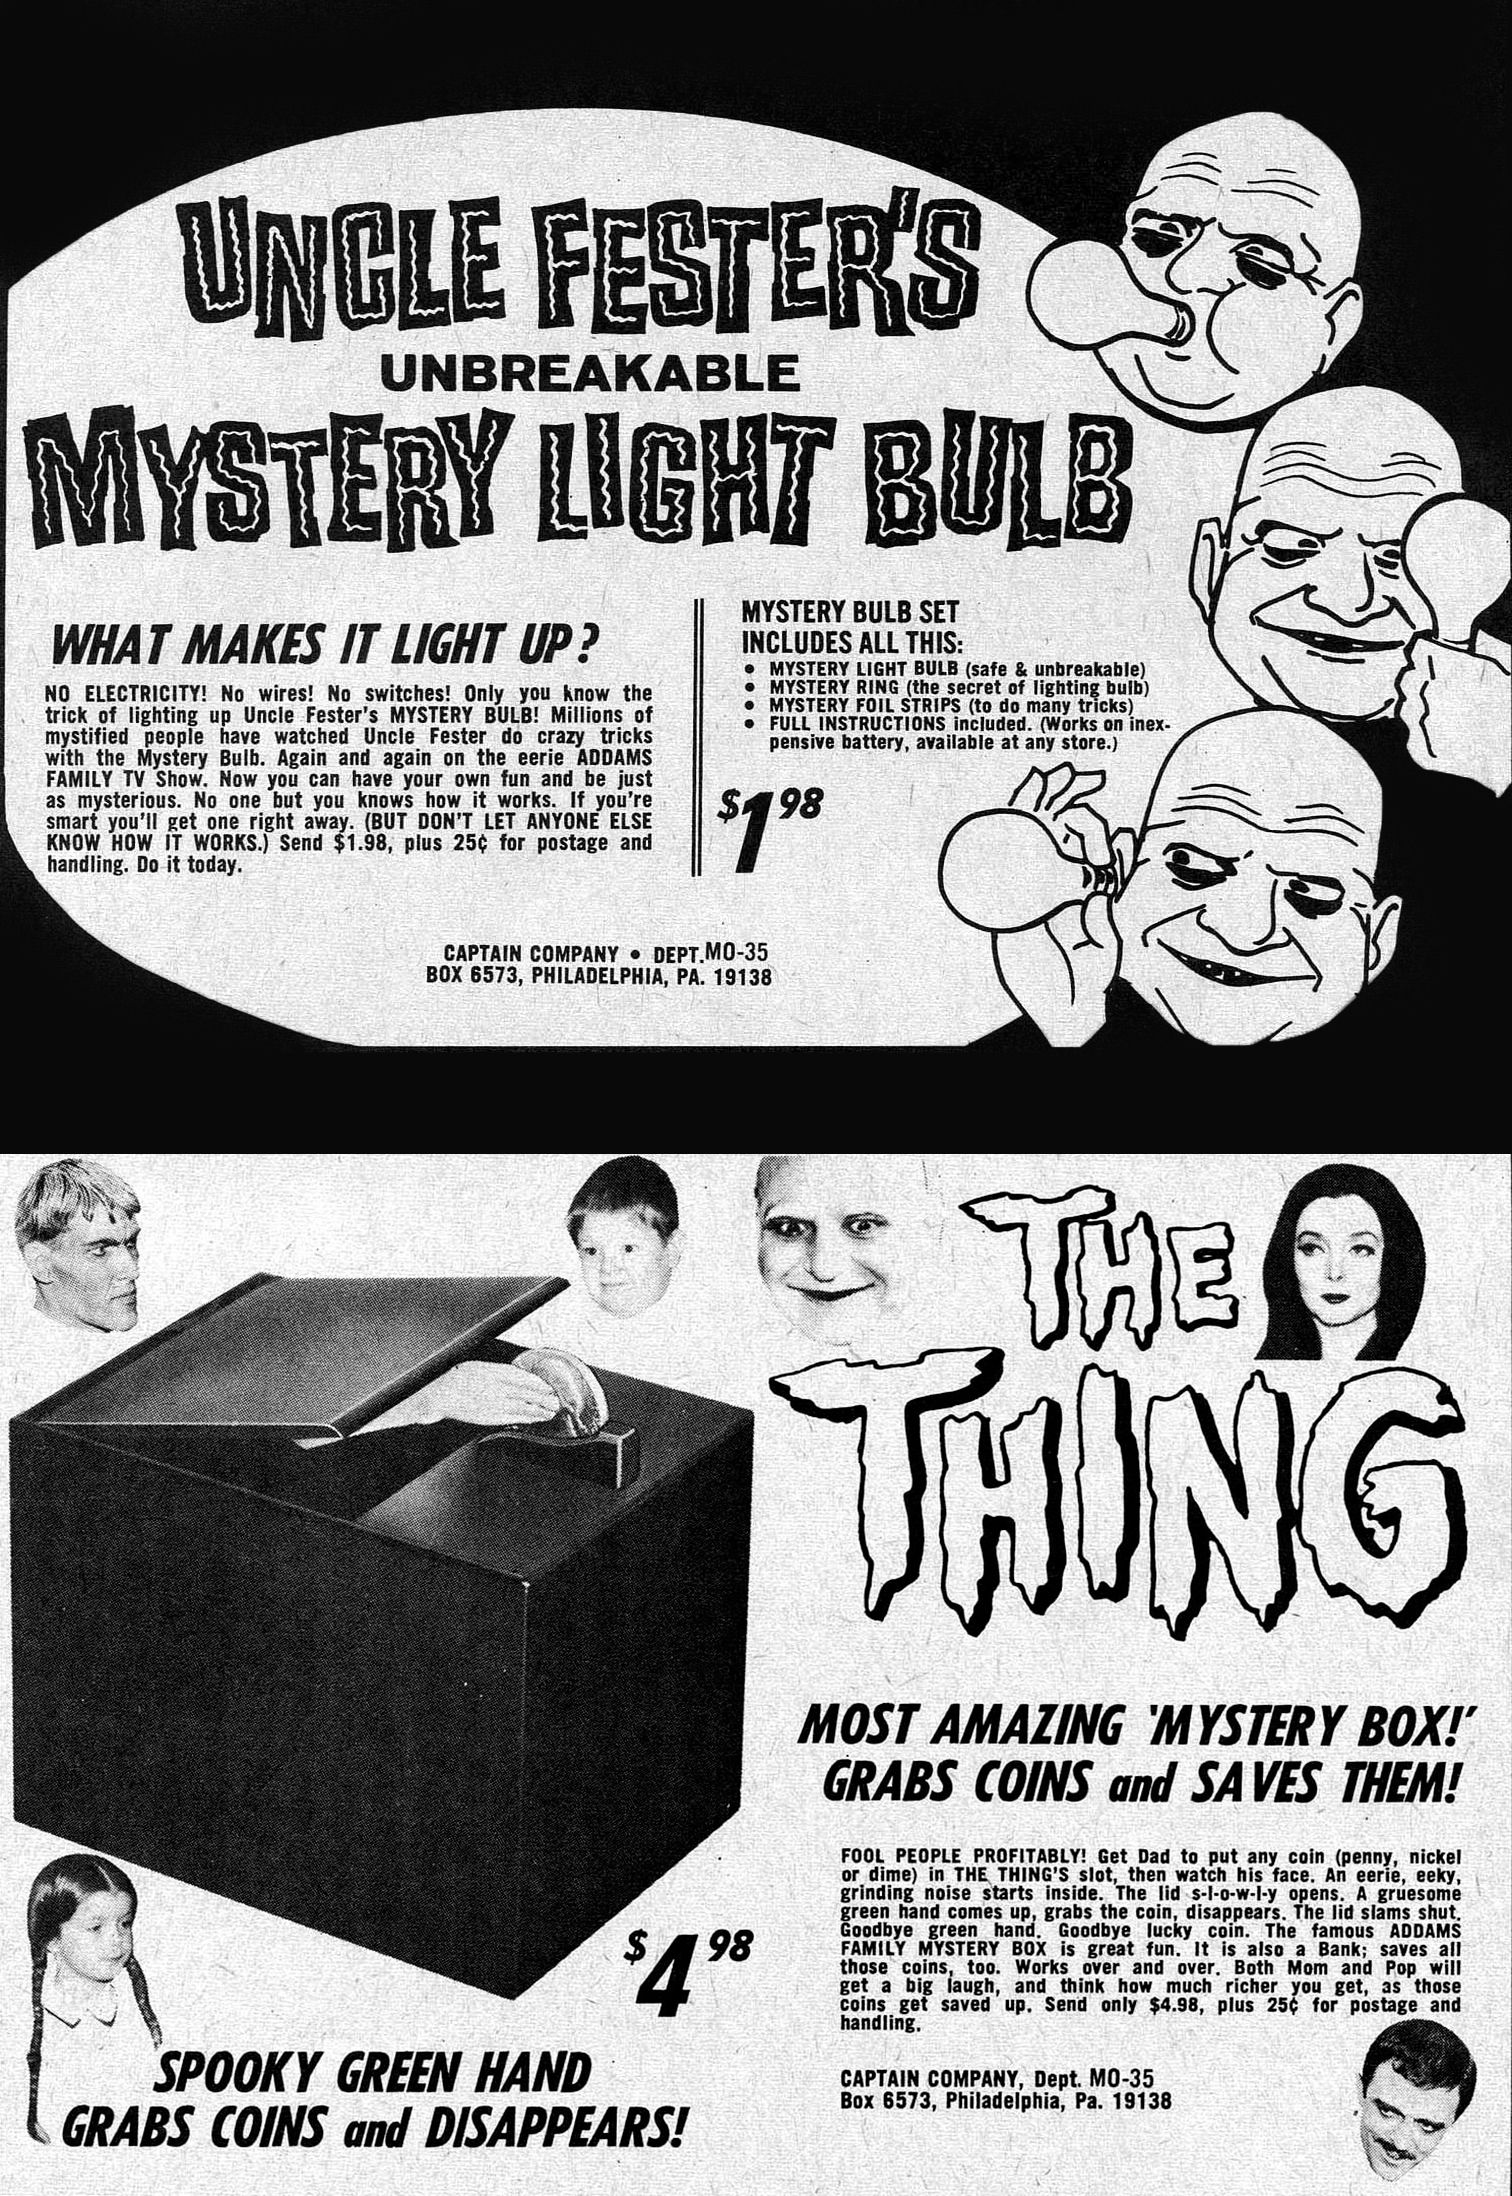 Uncle fester the addams family pinterest - The Addams Family Toys 1967 Uncle Fester S Unbreakable Mystery Light Bulb 1966 The Thing